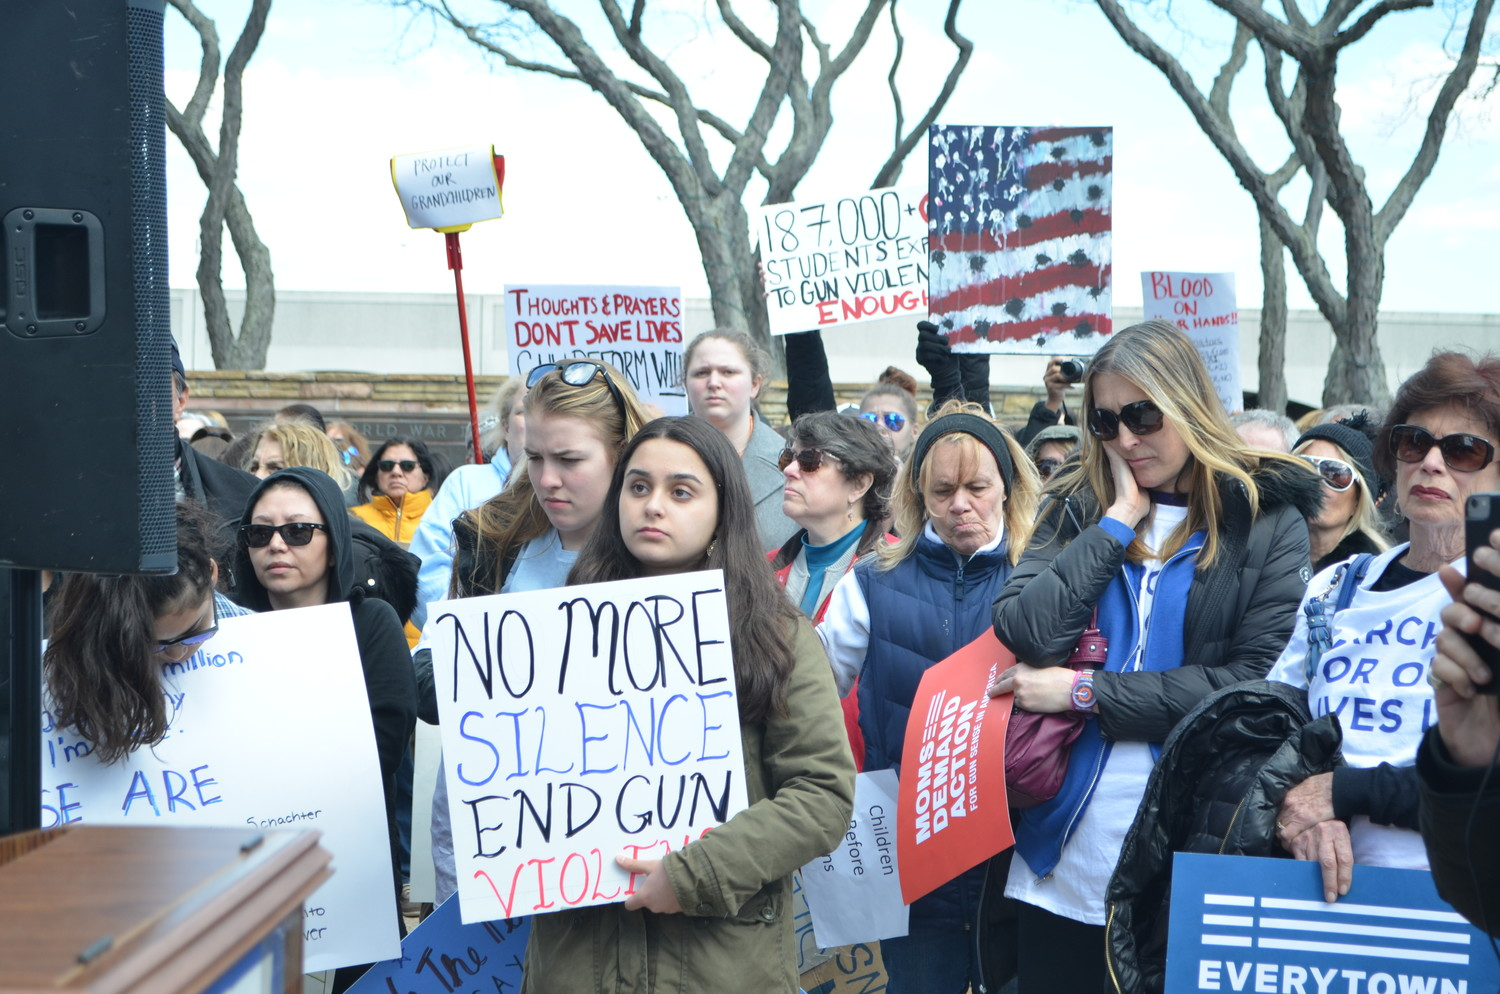 Hundreds of people gathered in Kennedy Plaza in March to protest gun violence after the shootings in Parkland, Fla.